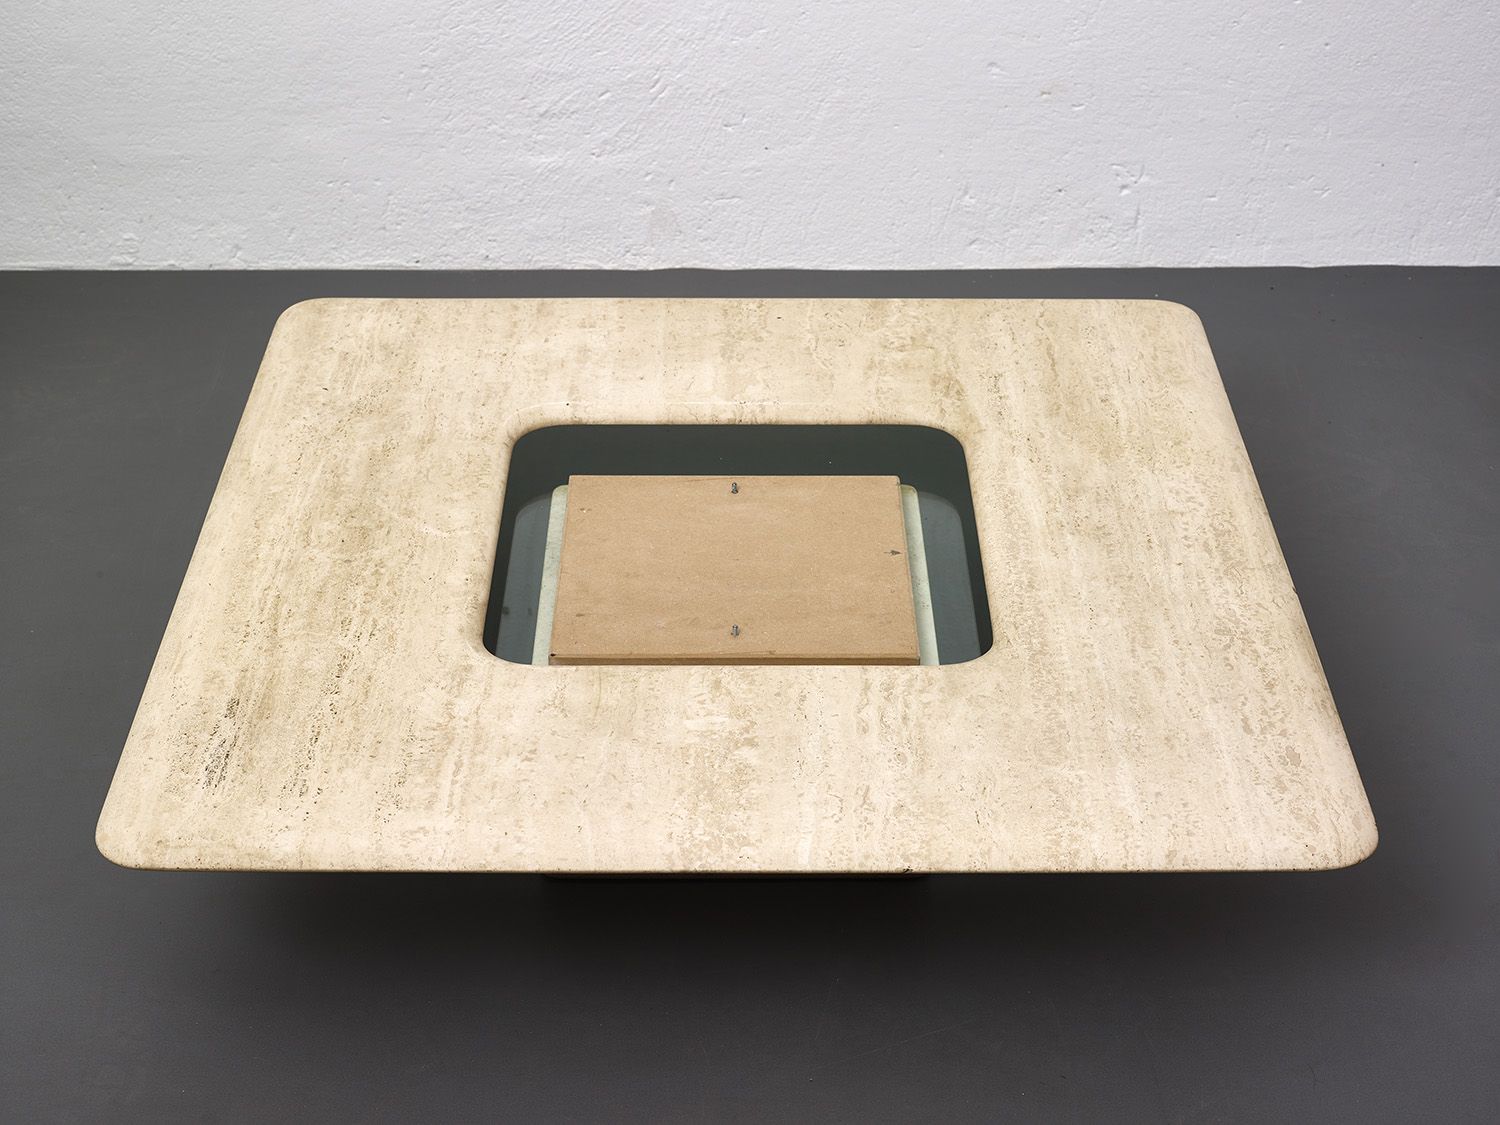 italian-travertine-coffee-table-with-floating-top-1970-1980-image-08